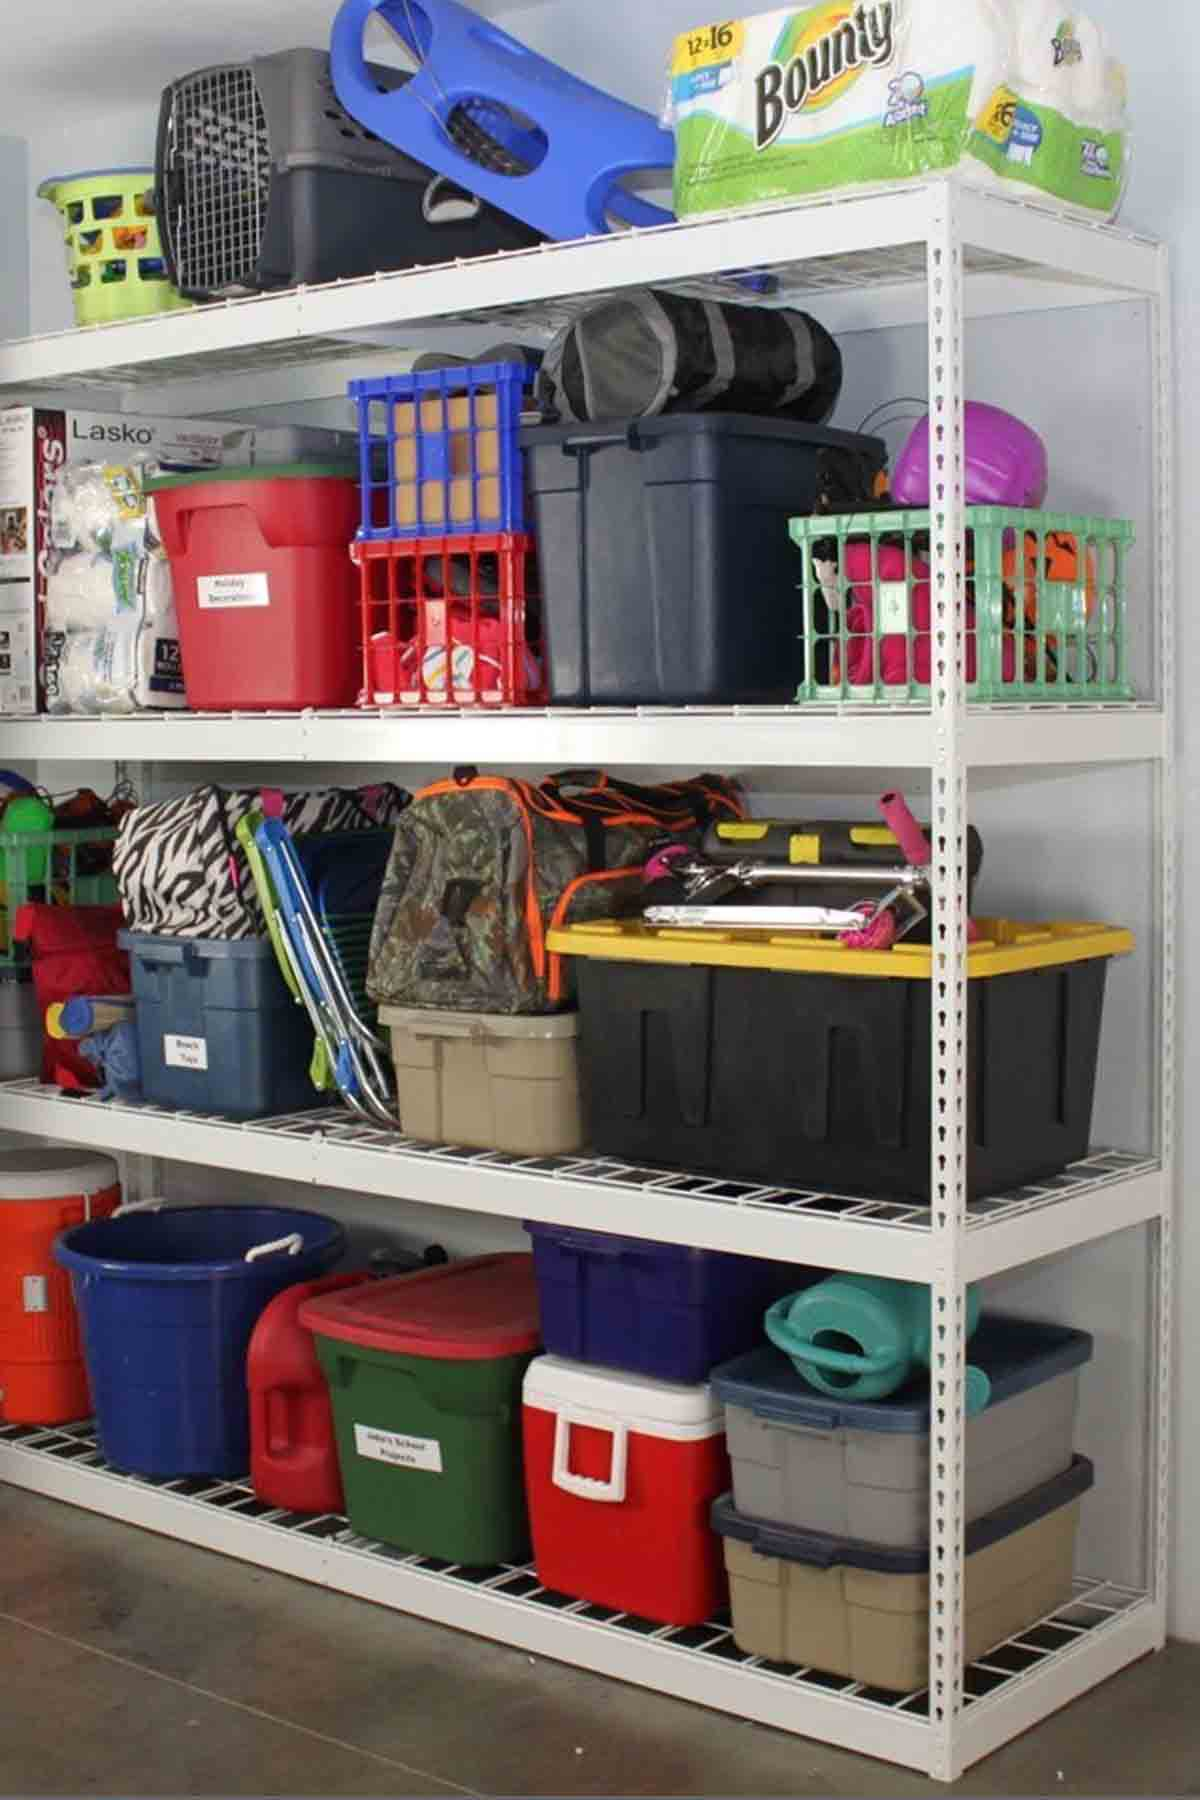 20 Garage Organization Ideas - Storage Solutions and Tips for